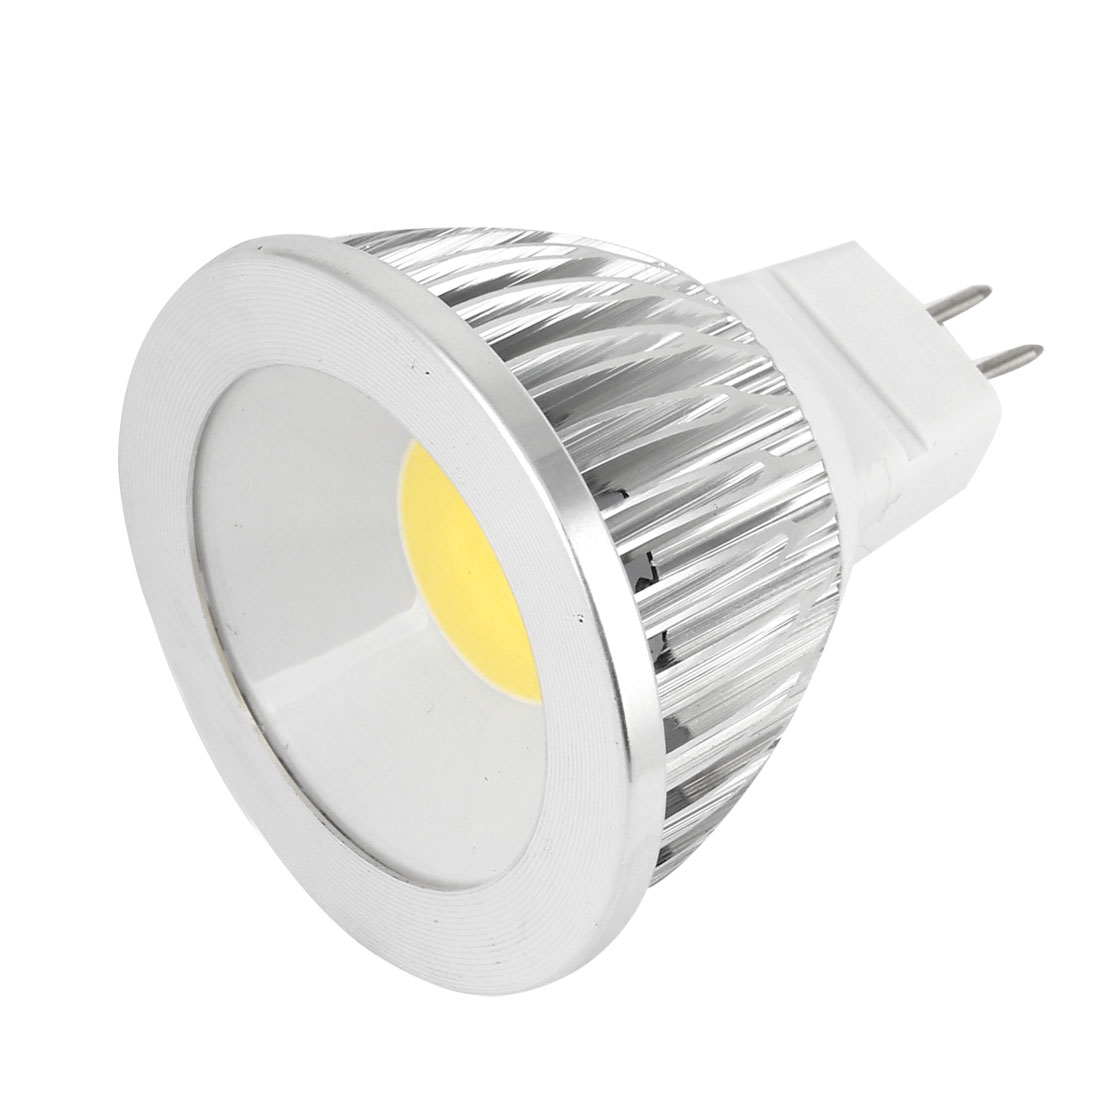 AC 12V 6W MR16 Non-dimmable White Light COB LED Downlight Spotlight